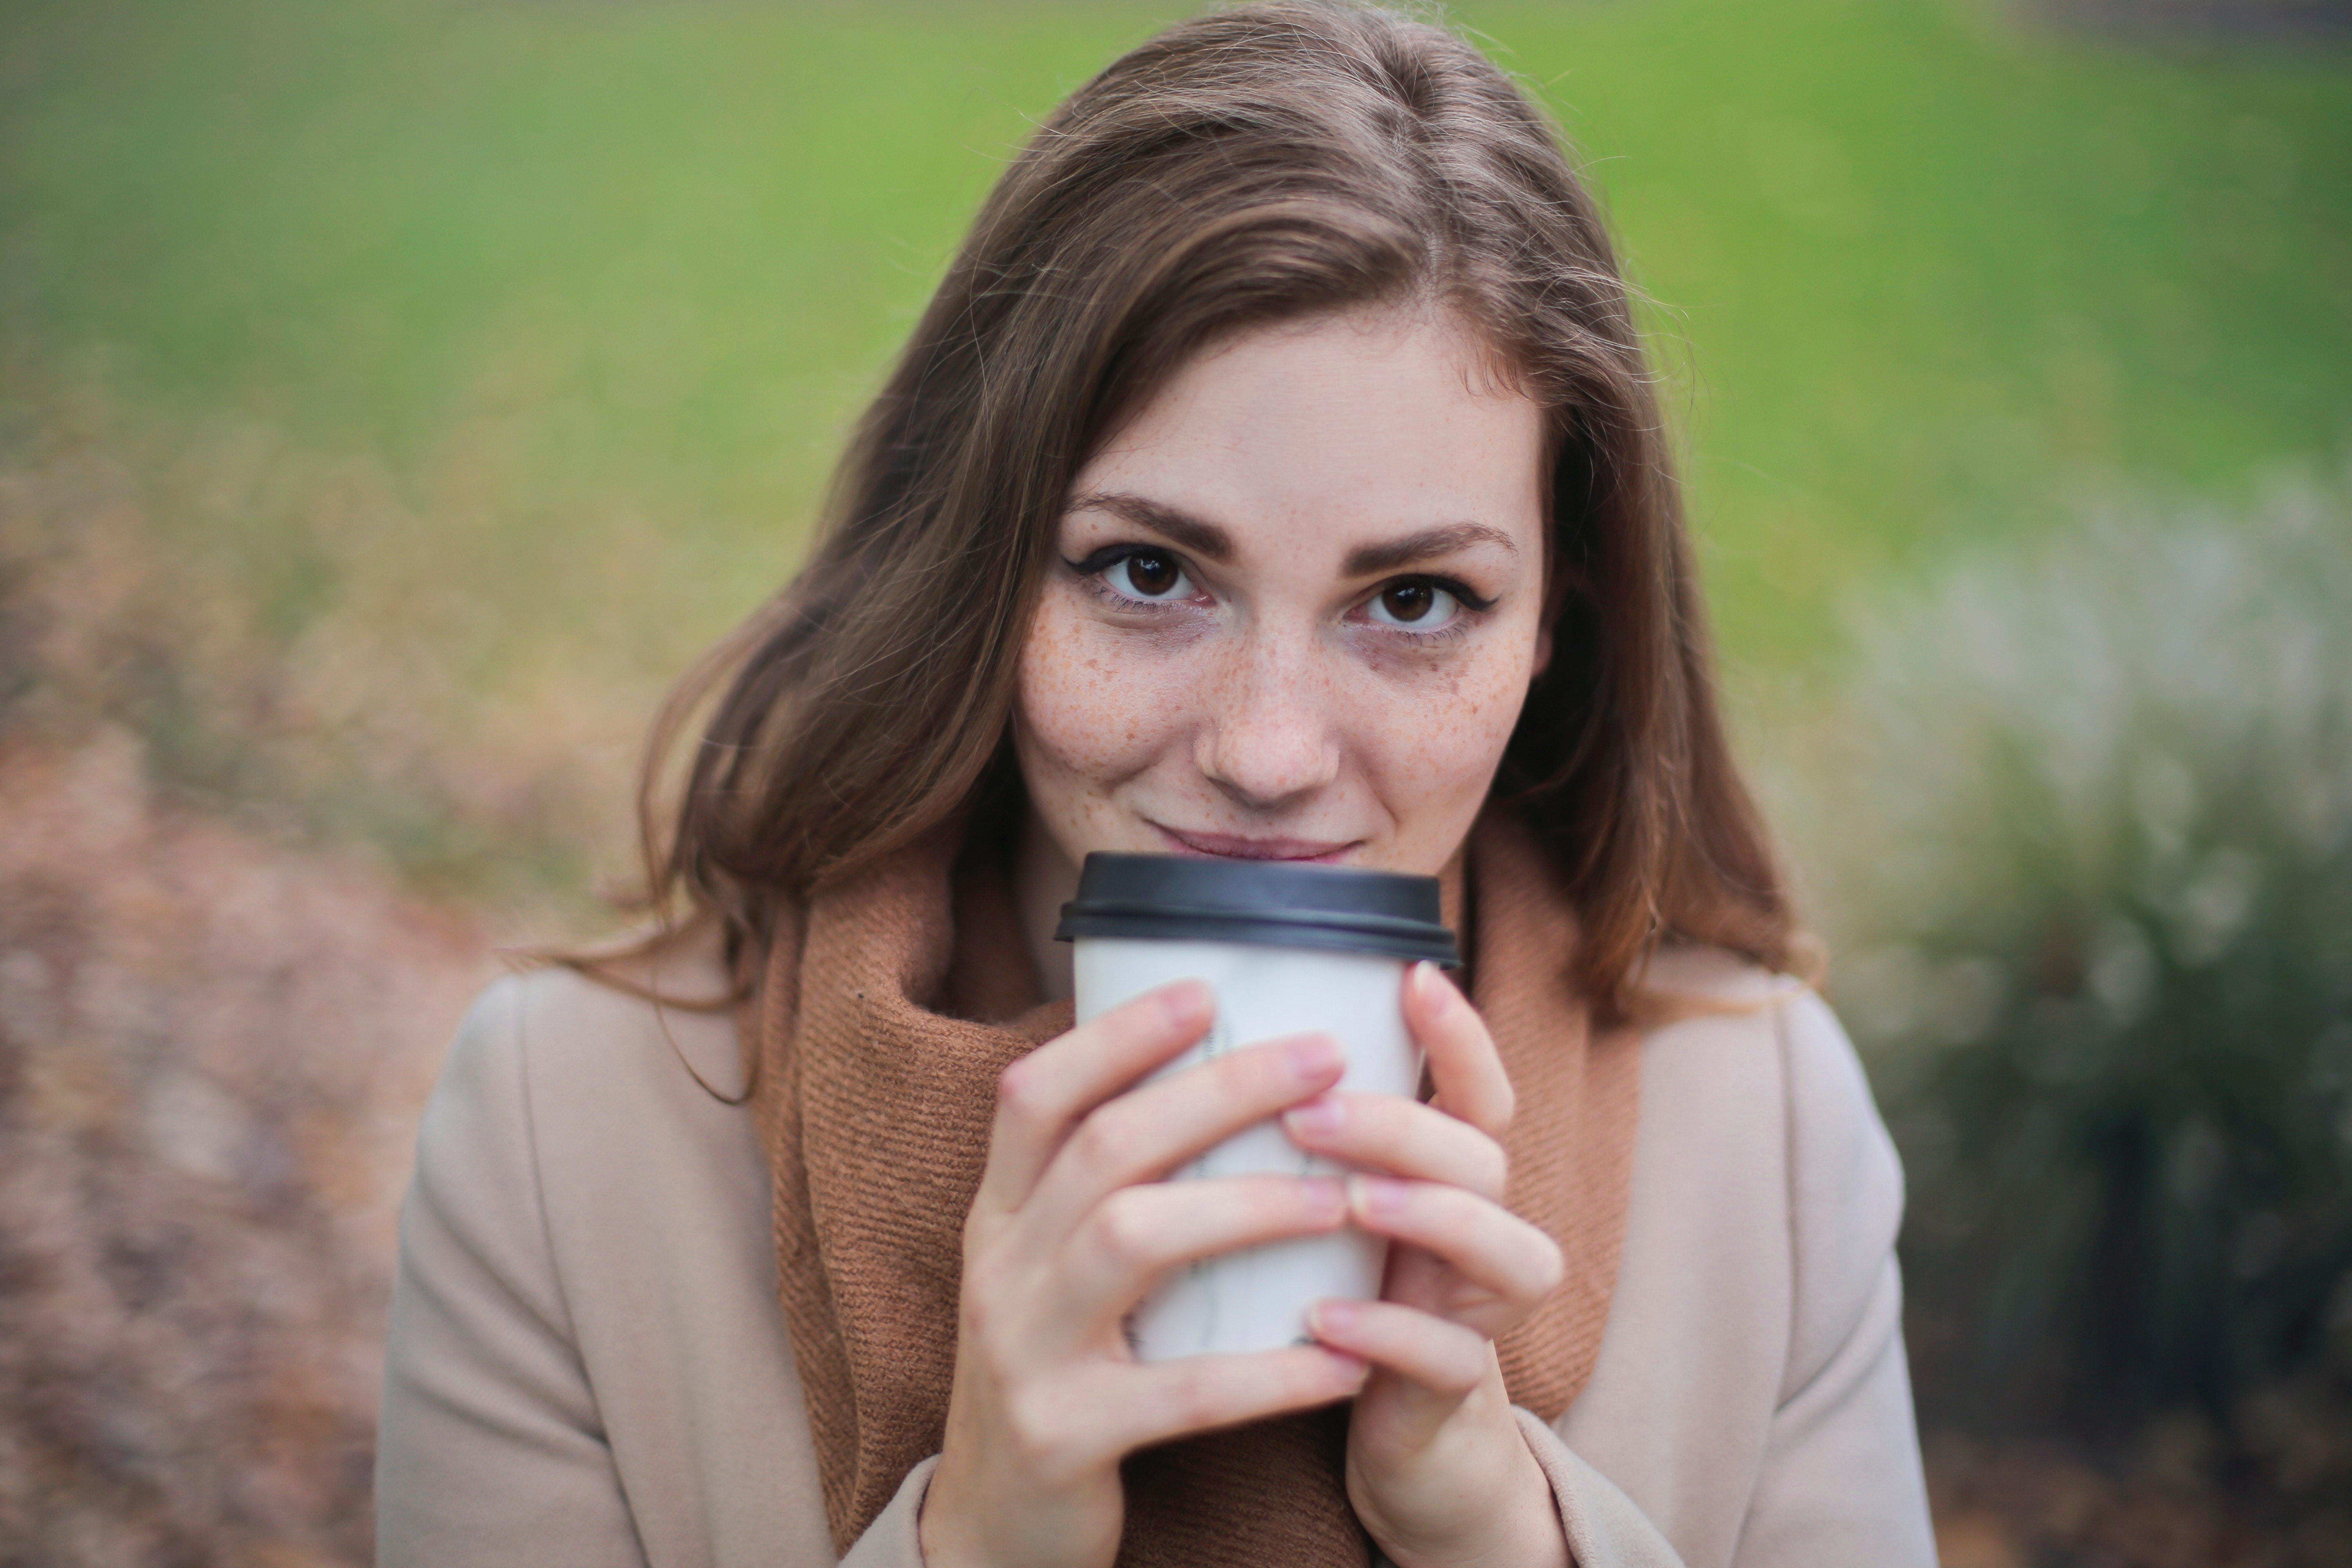 Woman in Brown Top and Scarf Holding a White and Black Travel Cup Outside, Beautiful, Holding, Woman, Wear, HQ Photo